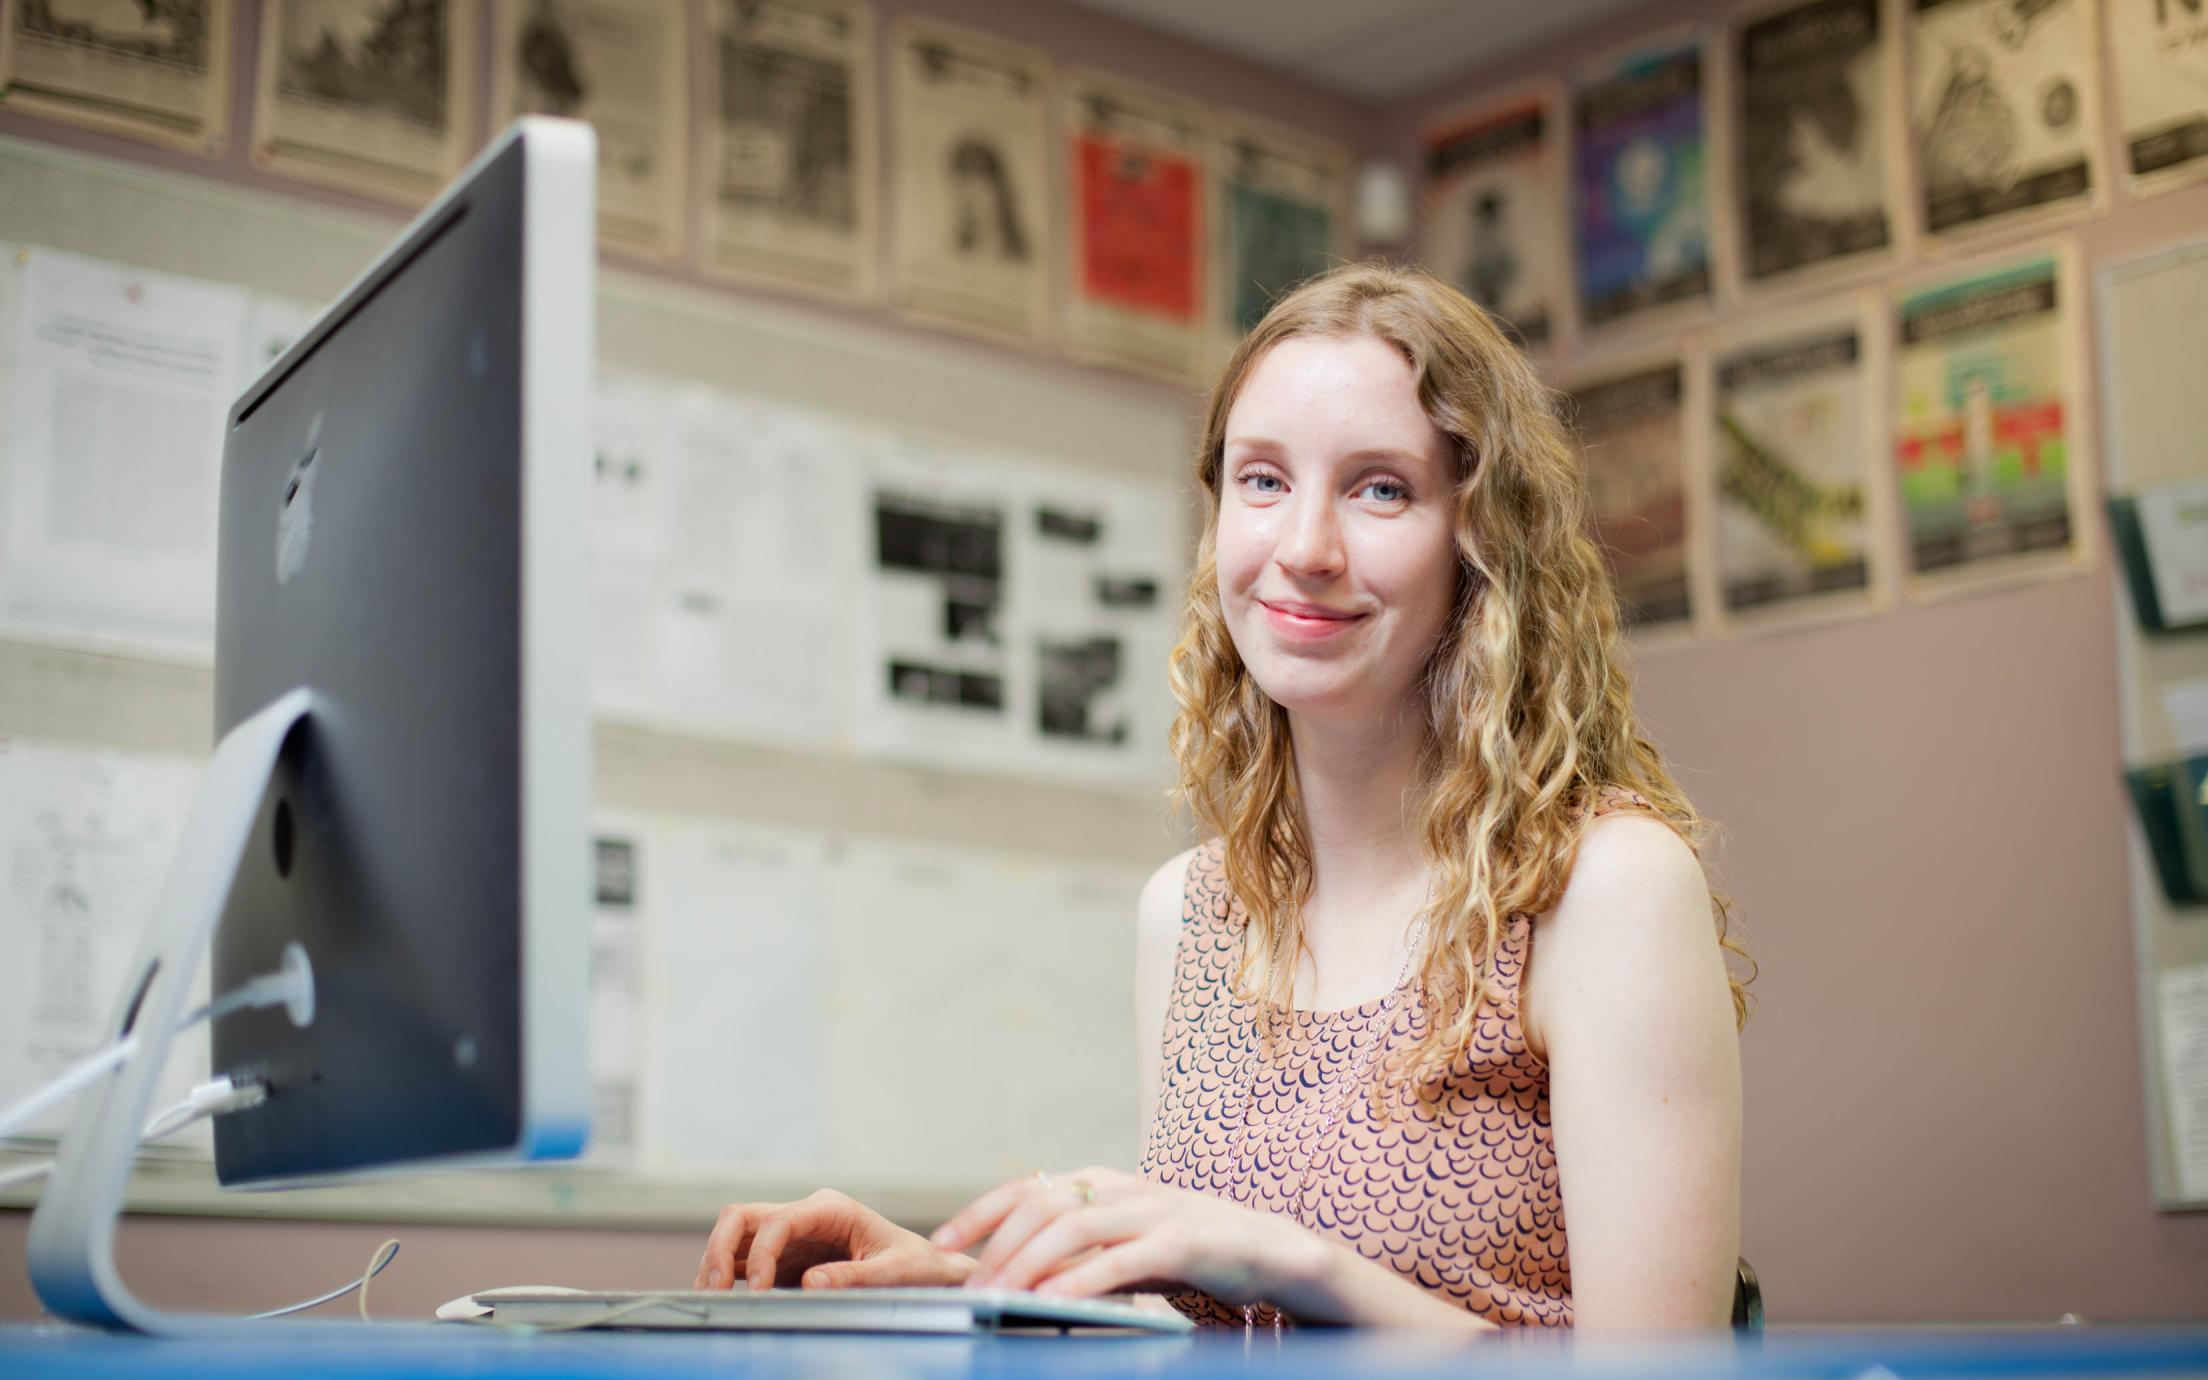 Natalie Gates, a student of the degree in Political Science program, working on her thesis